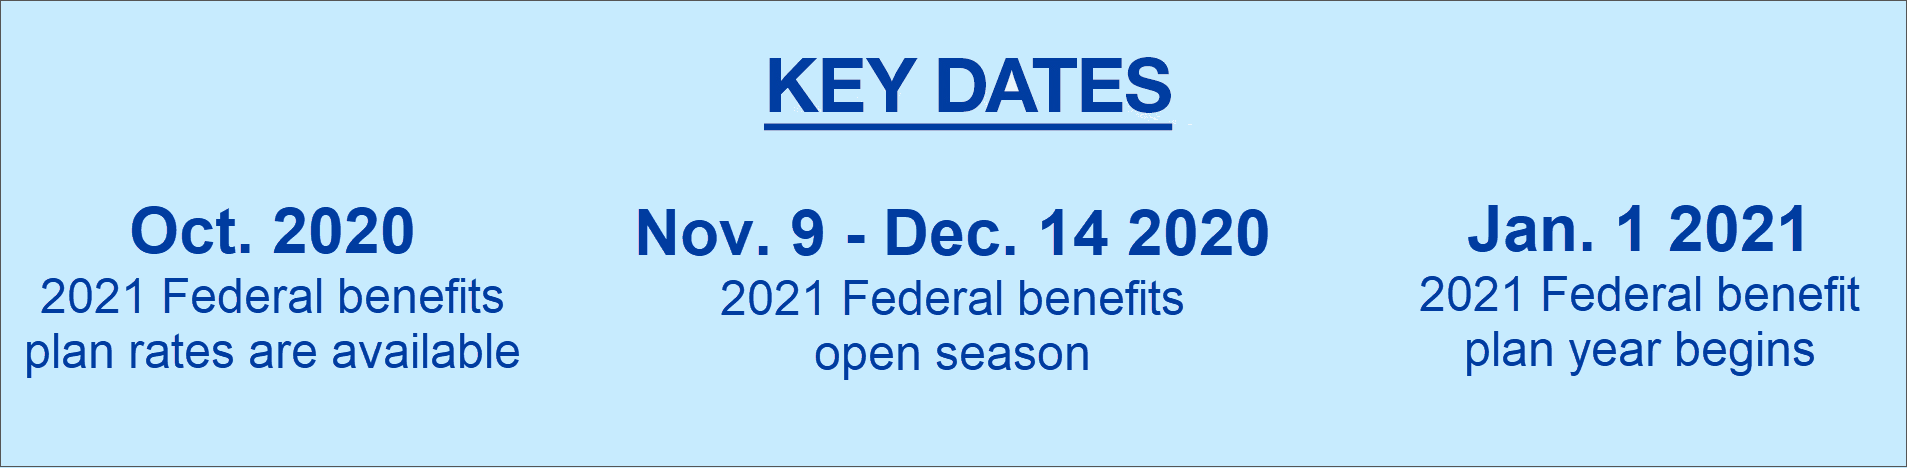 Key Dates  October 2019 2020 FEDVIP plan rates available